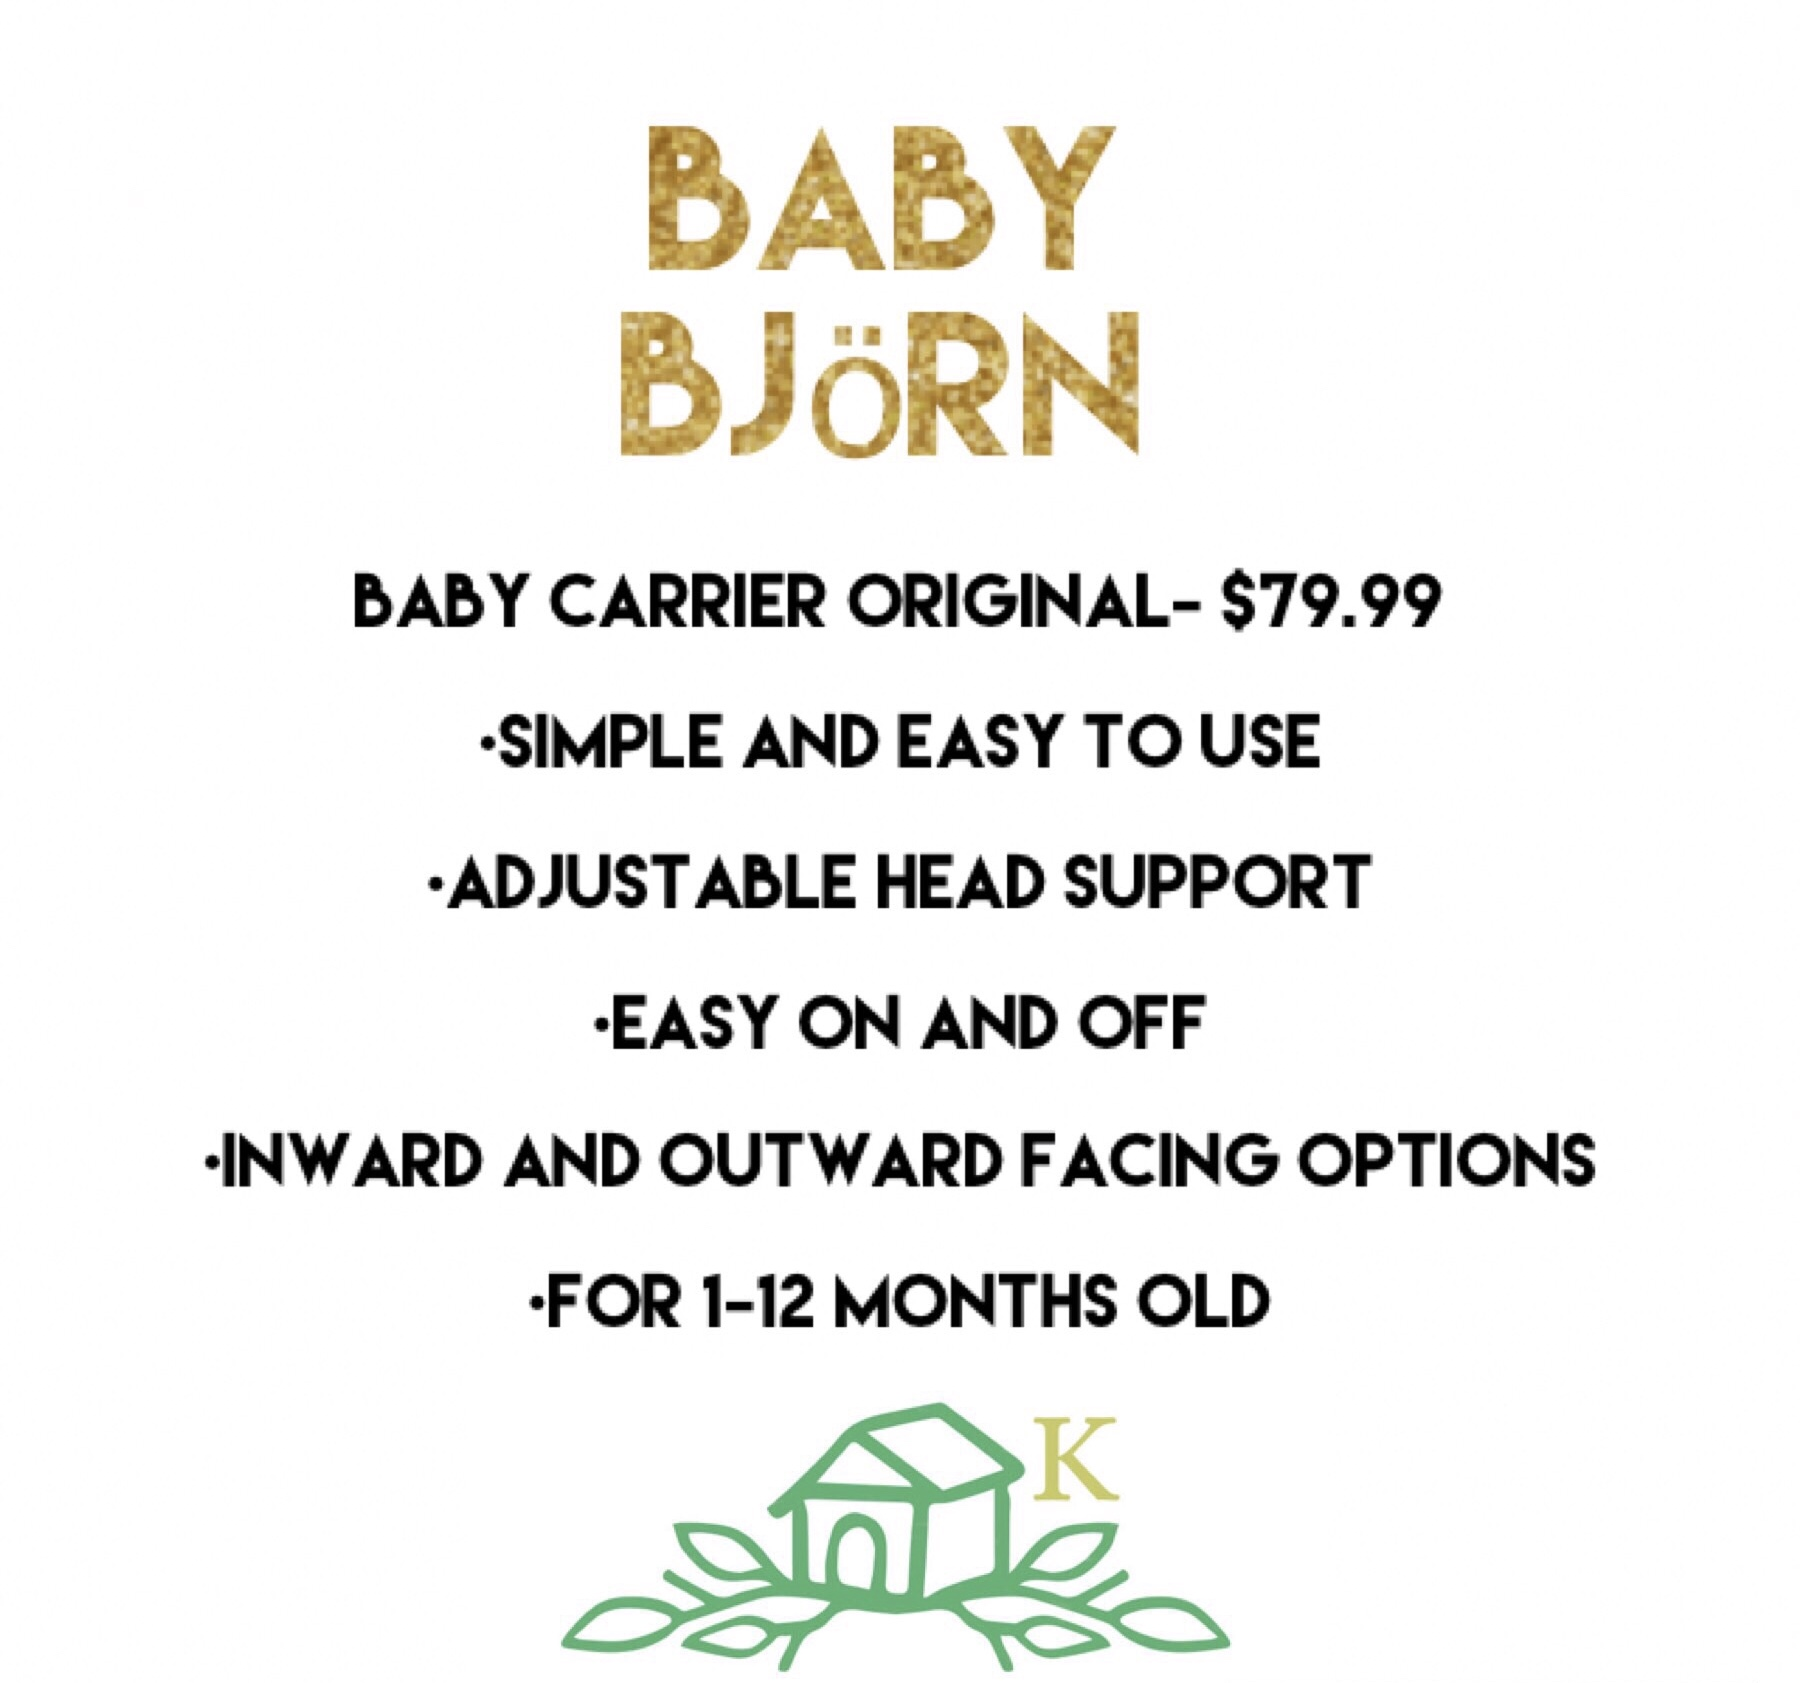 purchase here:  https://www.babybjorn.com/baby-carriers/original/